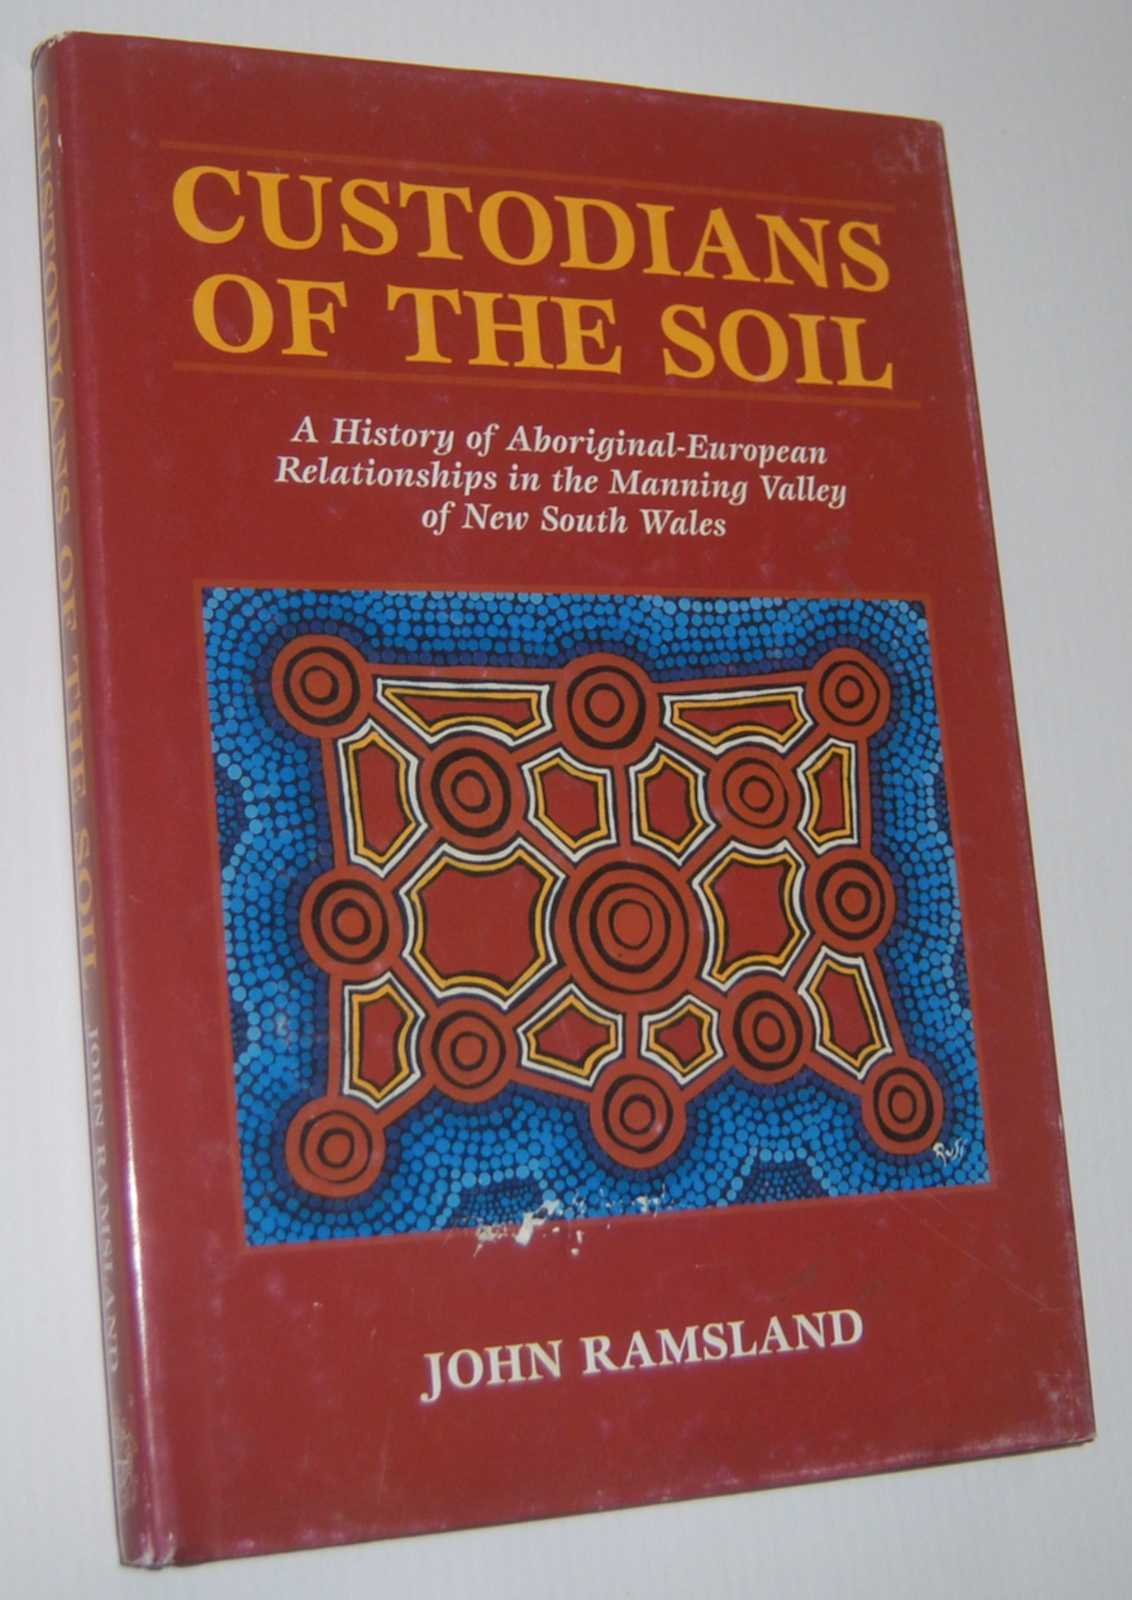 Image for CUSTODIANS OF THE SOIL: A History of Aboriginal-European Relationships in the Manning Valley of New South Wales